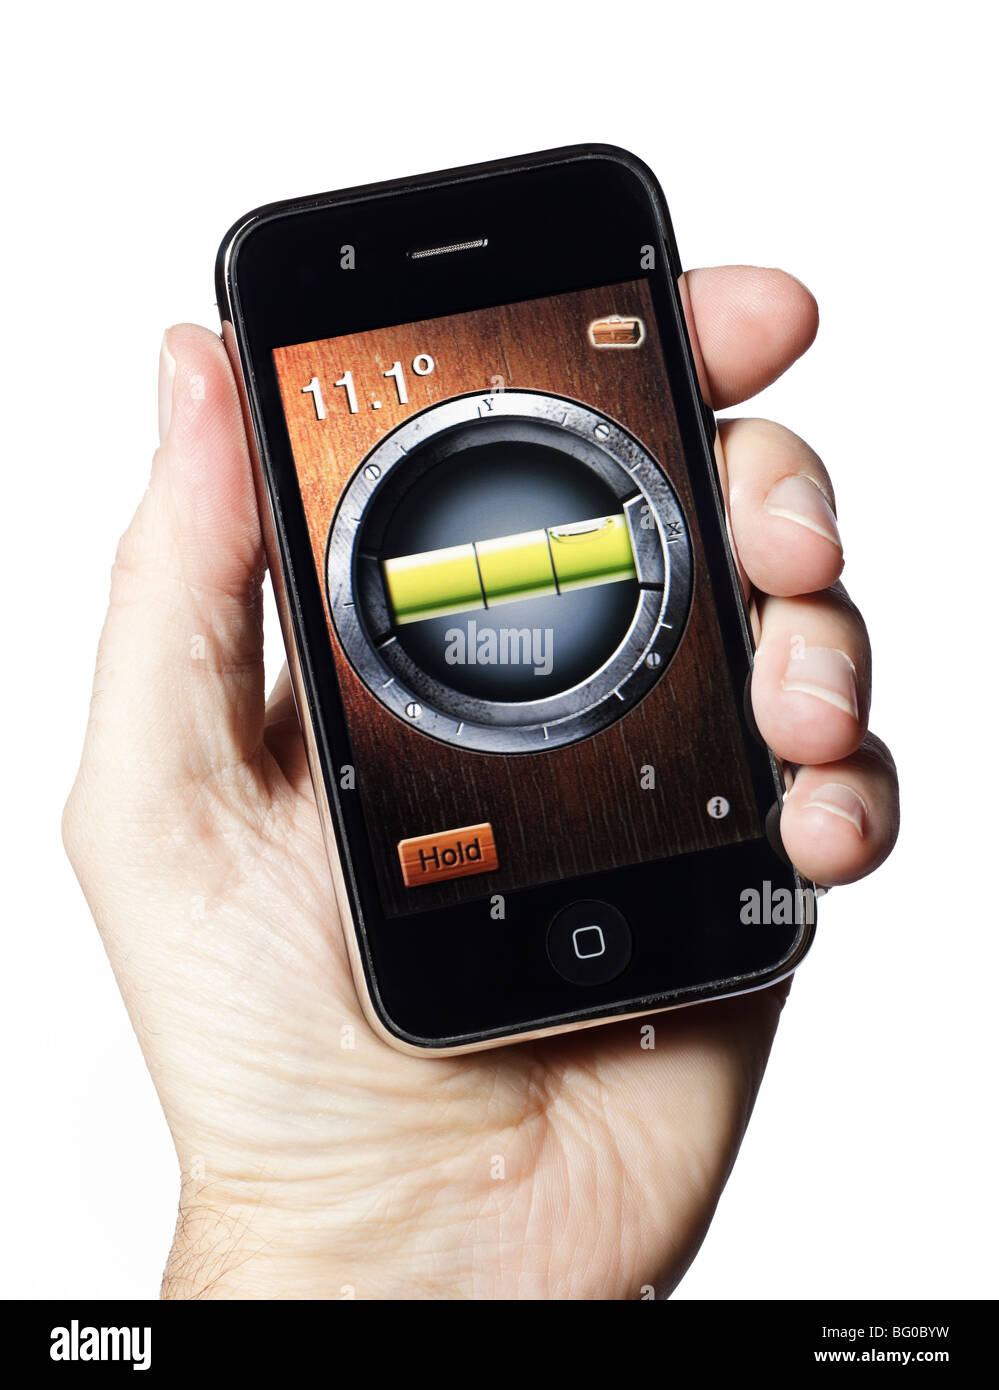 Male hand holding iPhone using a spirit level application - Stock Image